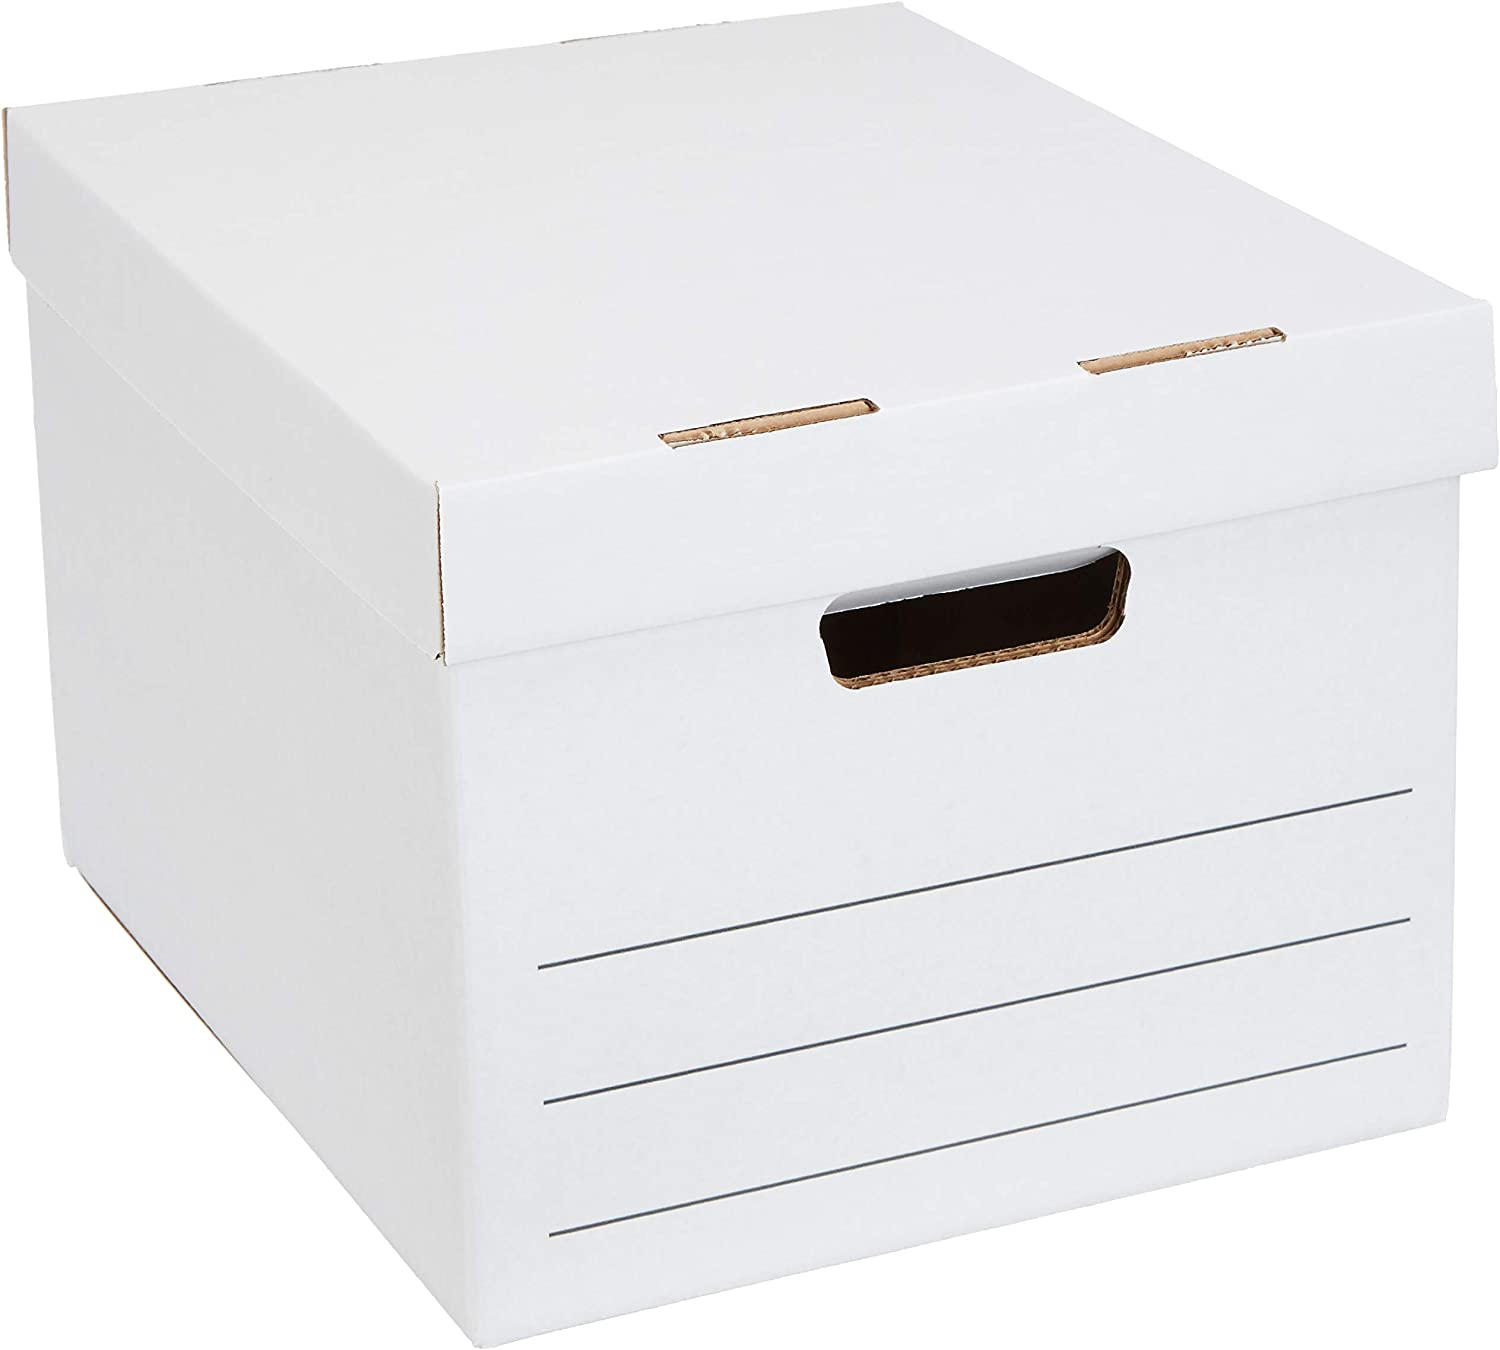 AmazonBasics Medium Duty Storage Filing Box with Lift-Off Lid - Pack of 12, Letter / Legal Size